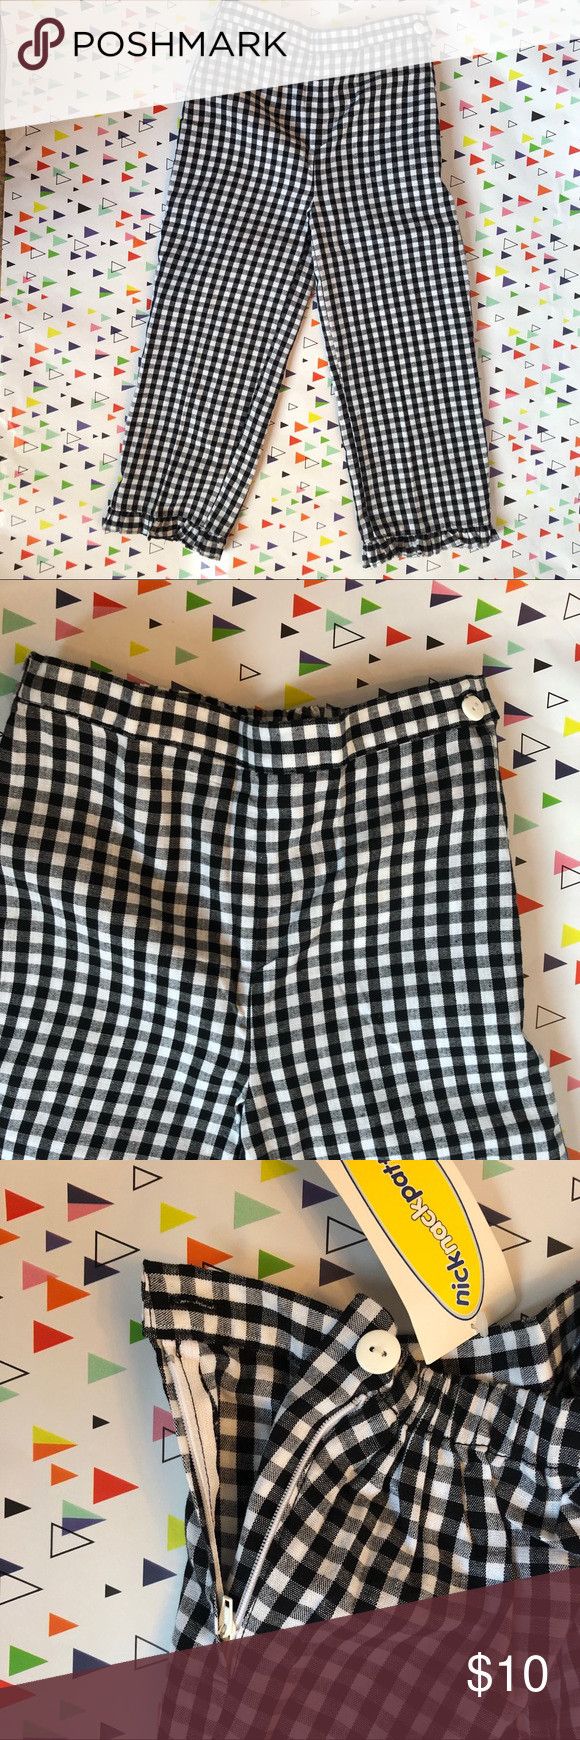 Patty by Knick Knack Patty Wack Checkered Pants Patty by Knick Knack Patty Wack Girls Black and White checked knit pants have cute ruffled bottoms. Button and zipper on the side of waist is easy for little hands to open and close. Elastic waist band on the back. Brand new with tags on. Patty by Knick Knack Patty Wack Bottoms Casual #knickknack